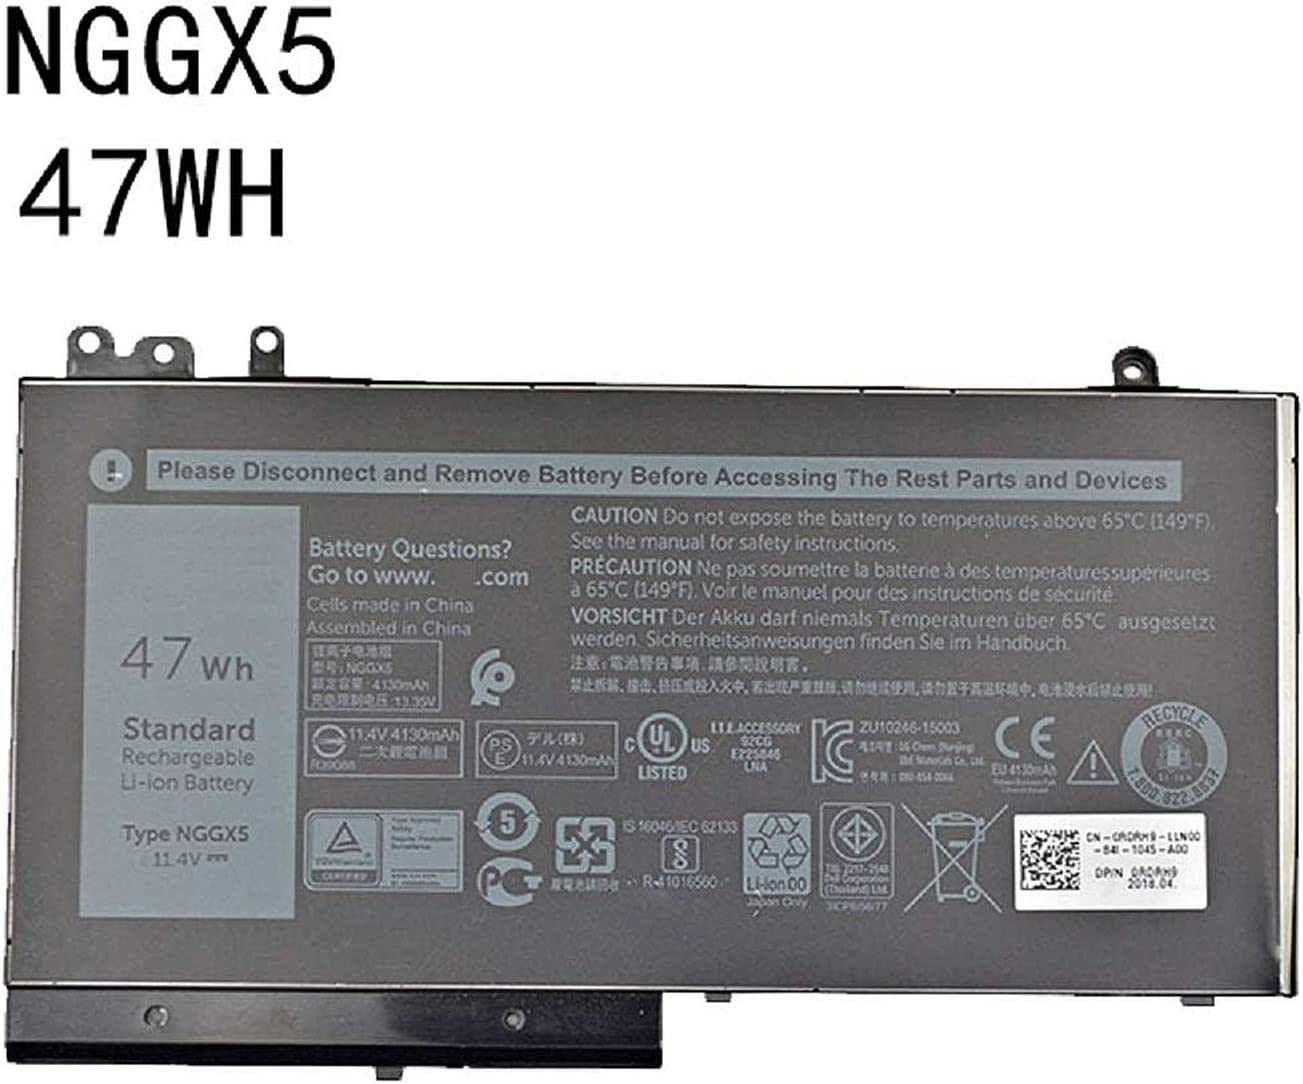 Amazon.com: Dentsing 11.4V 47Wh/4130mAh NGGX5 Laptop Battery Compatible with Dell Latitude E5270 E5470 E5570 M3510 Series Notebook JY8D6 954DF 0JY8D6: Computers & Accessories